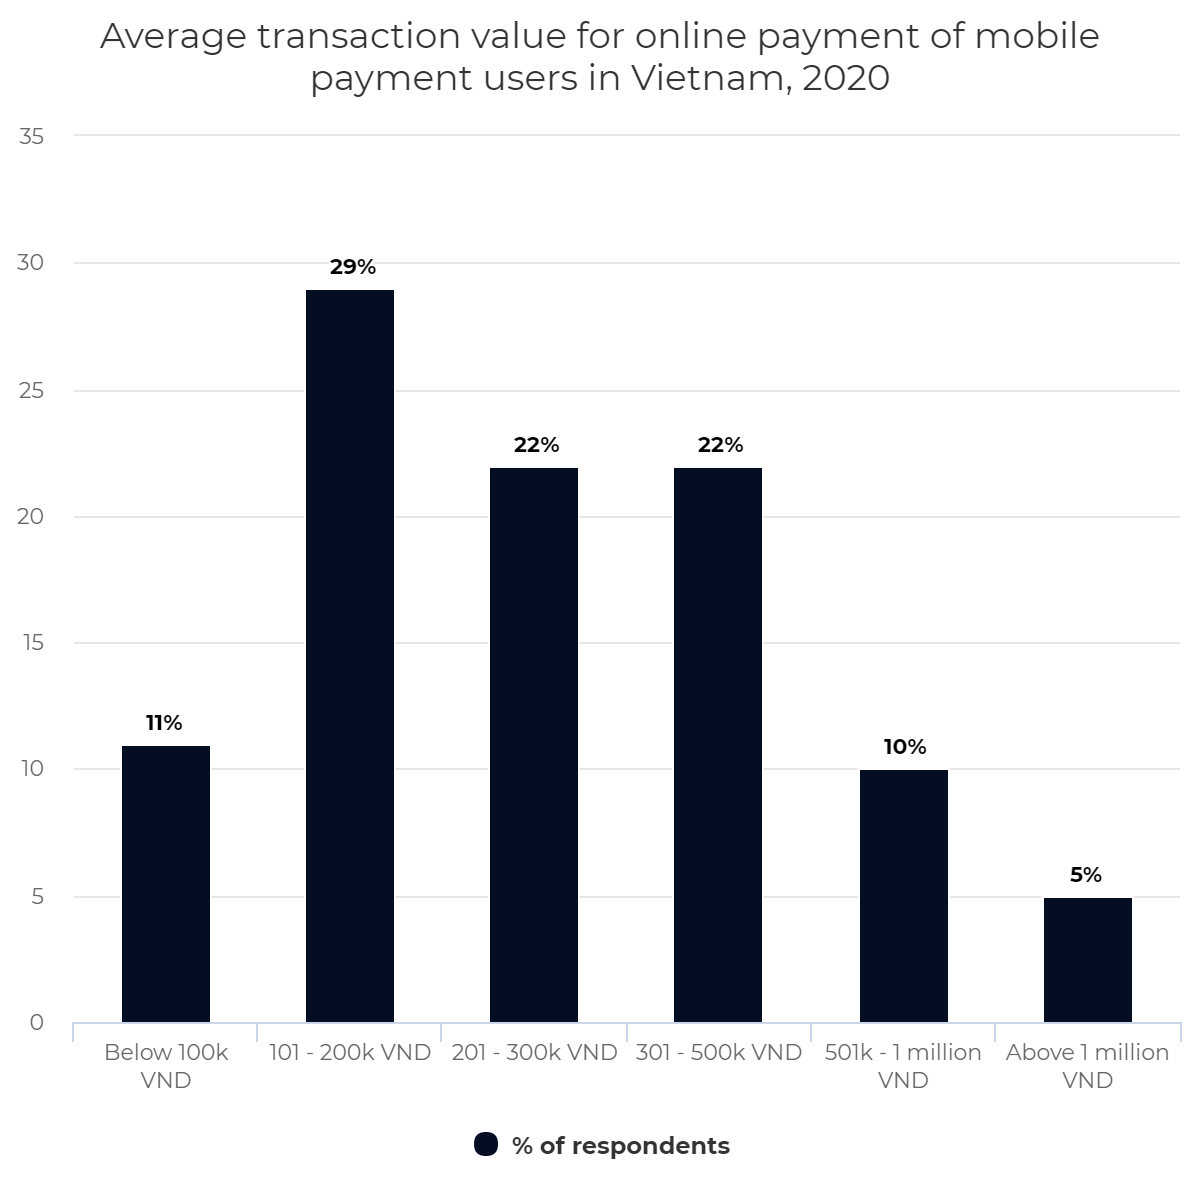 Average transaction value for online payment of mobile payment users in Vietnam, 2020